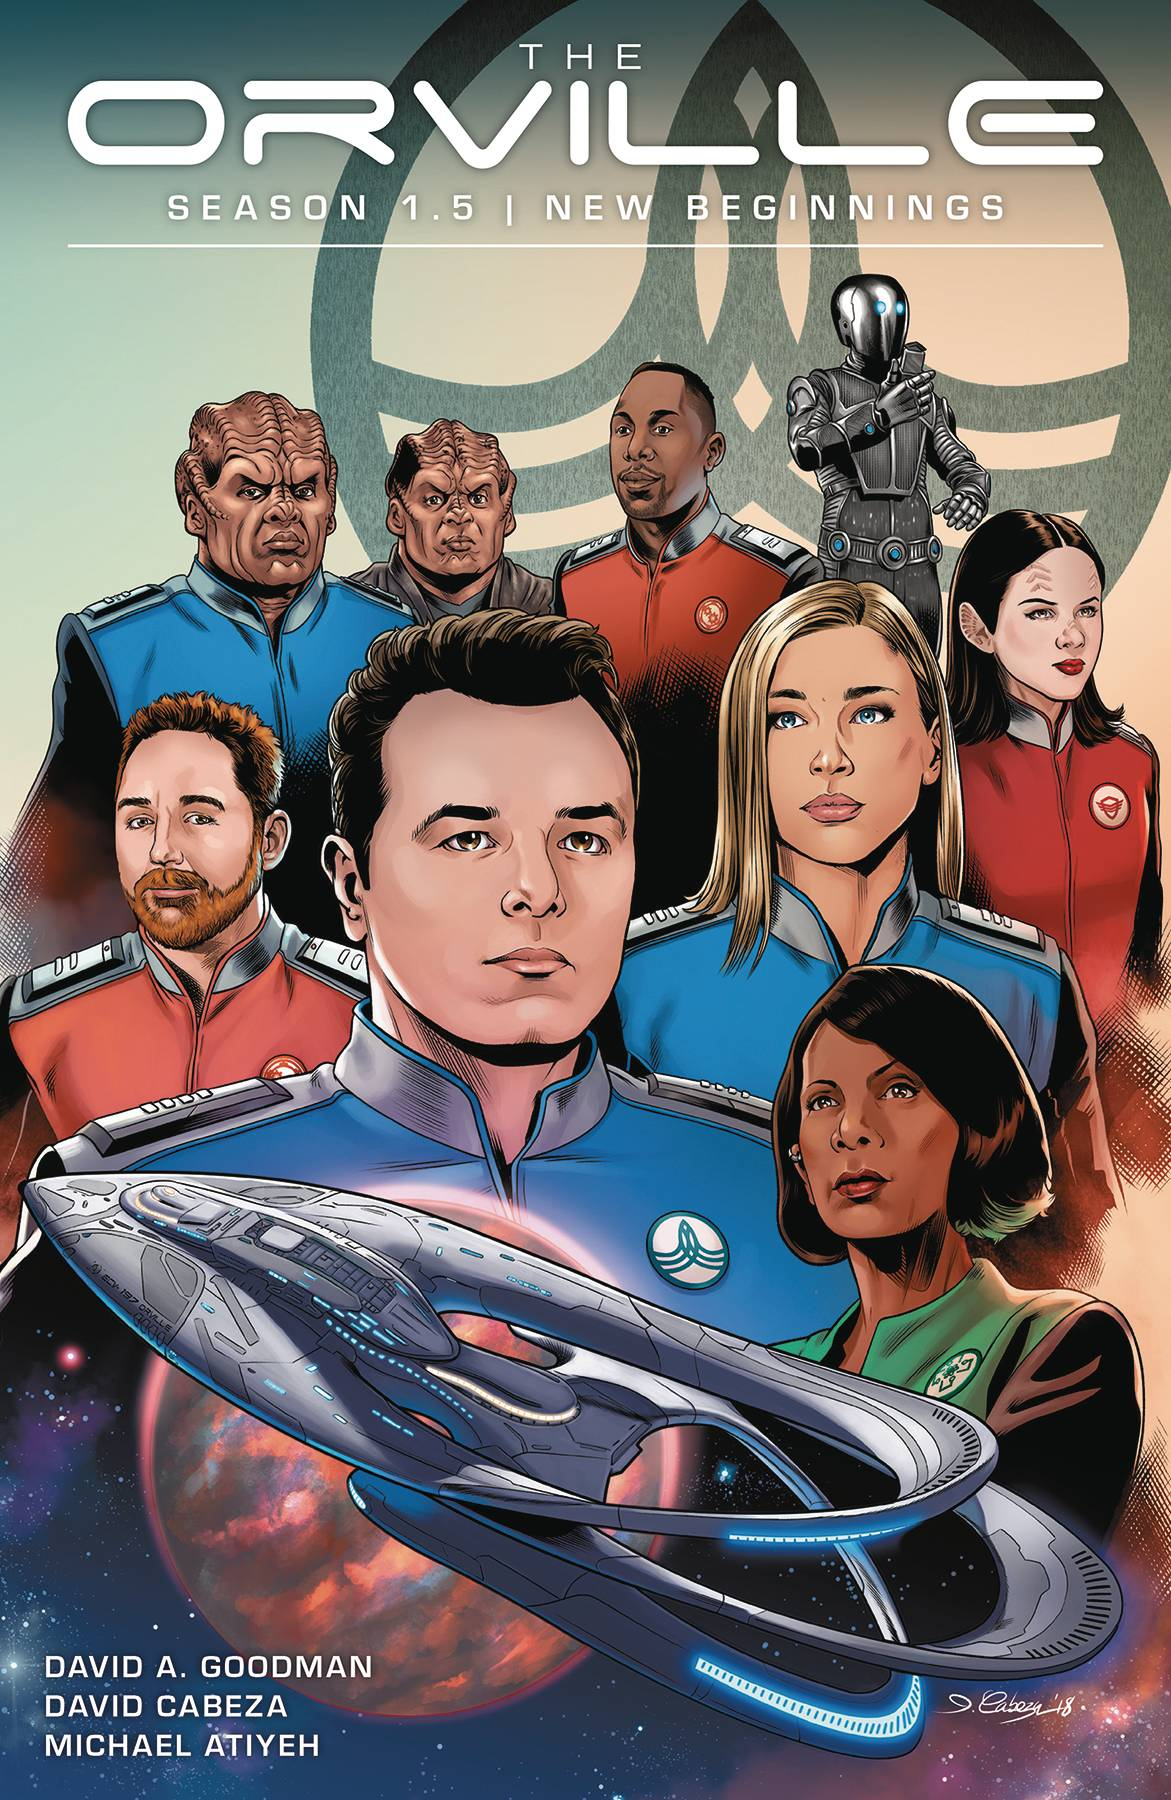 ORVILLE SEASON 1.5 TP VOL 01 NEW BEGINNINGS